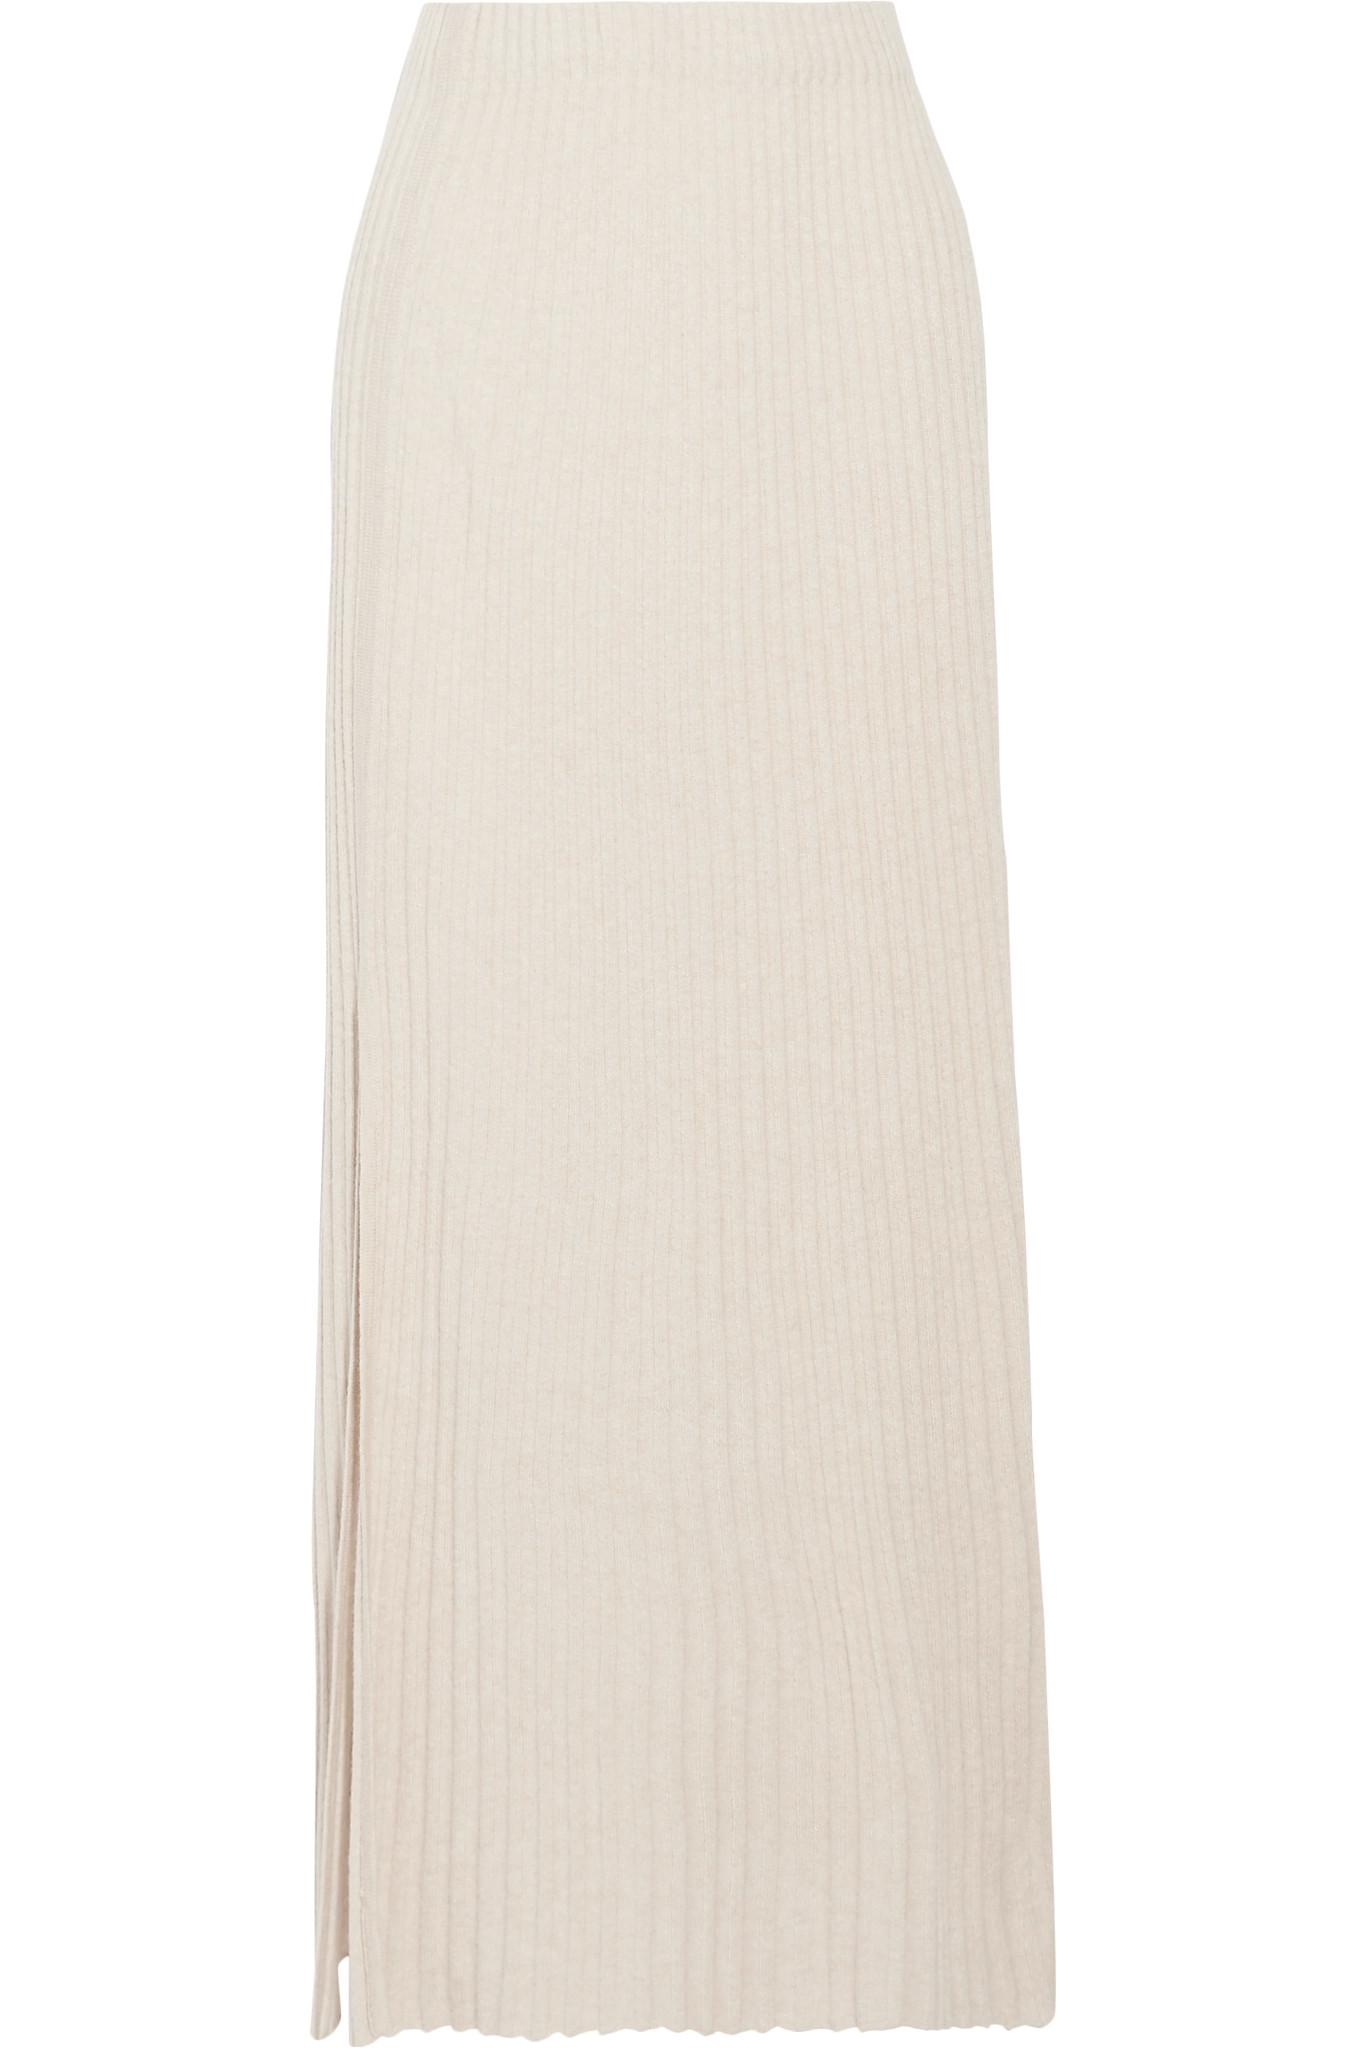 751e27ab40 Elizabeth and James Joelle Ribbed Stretch-knit Maxi Skirt in Natural ...